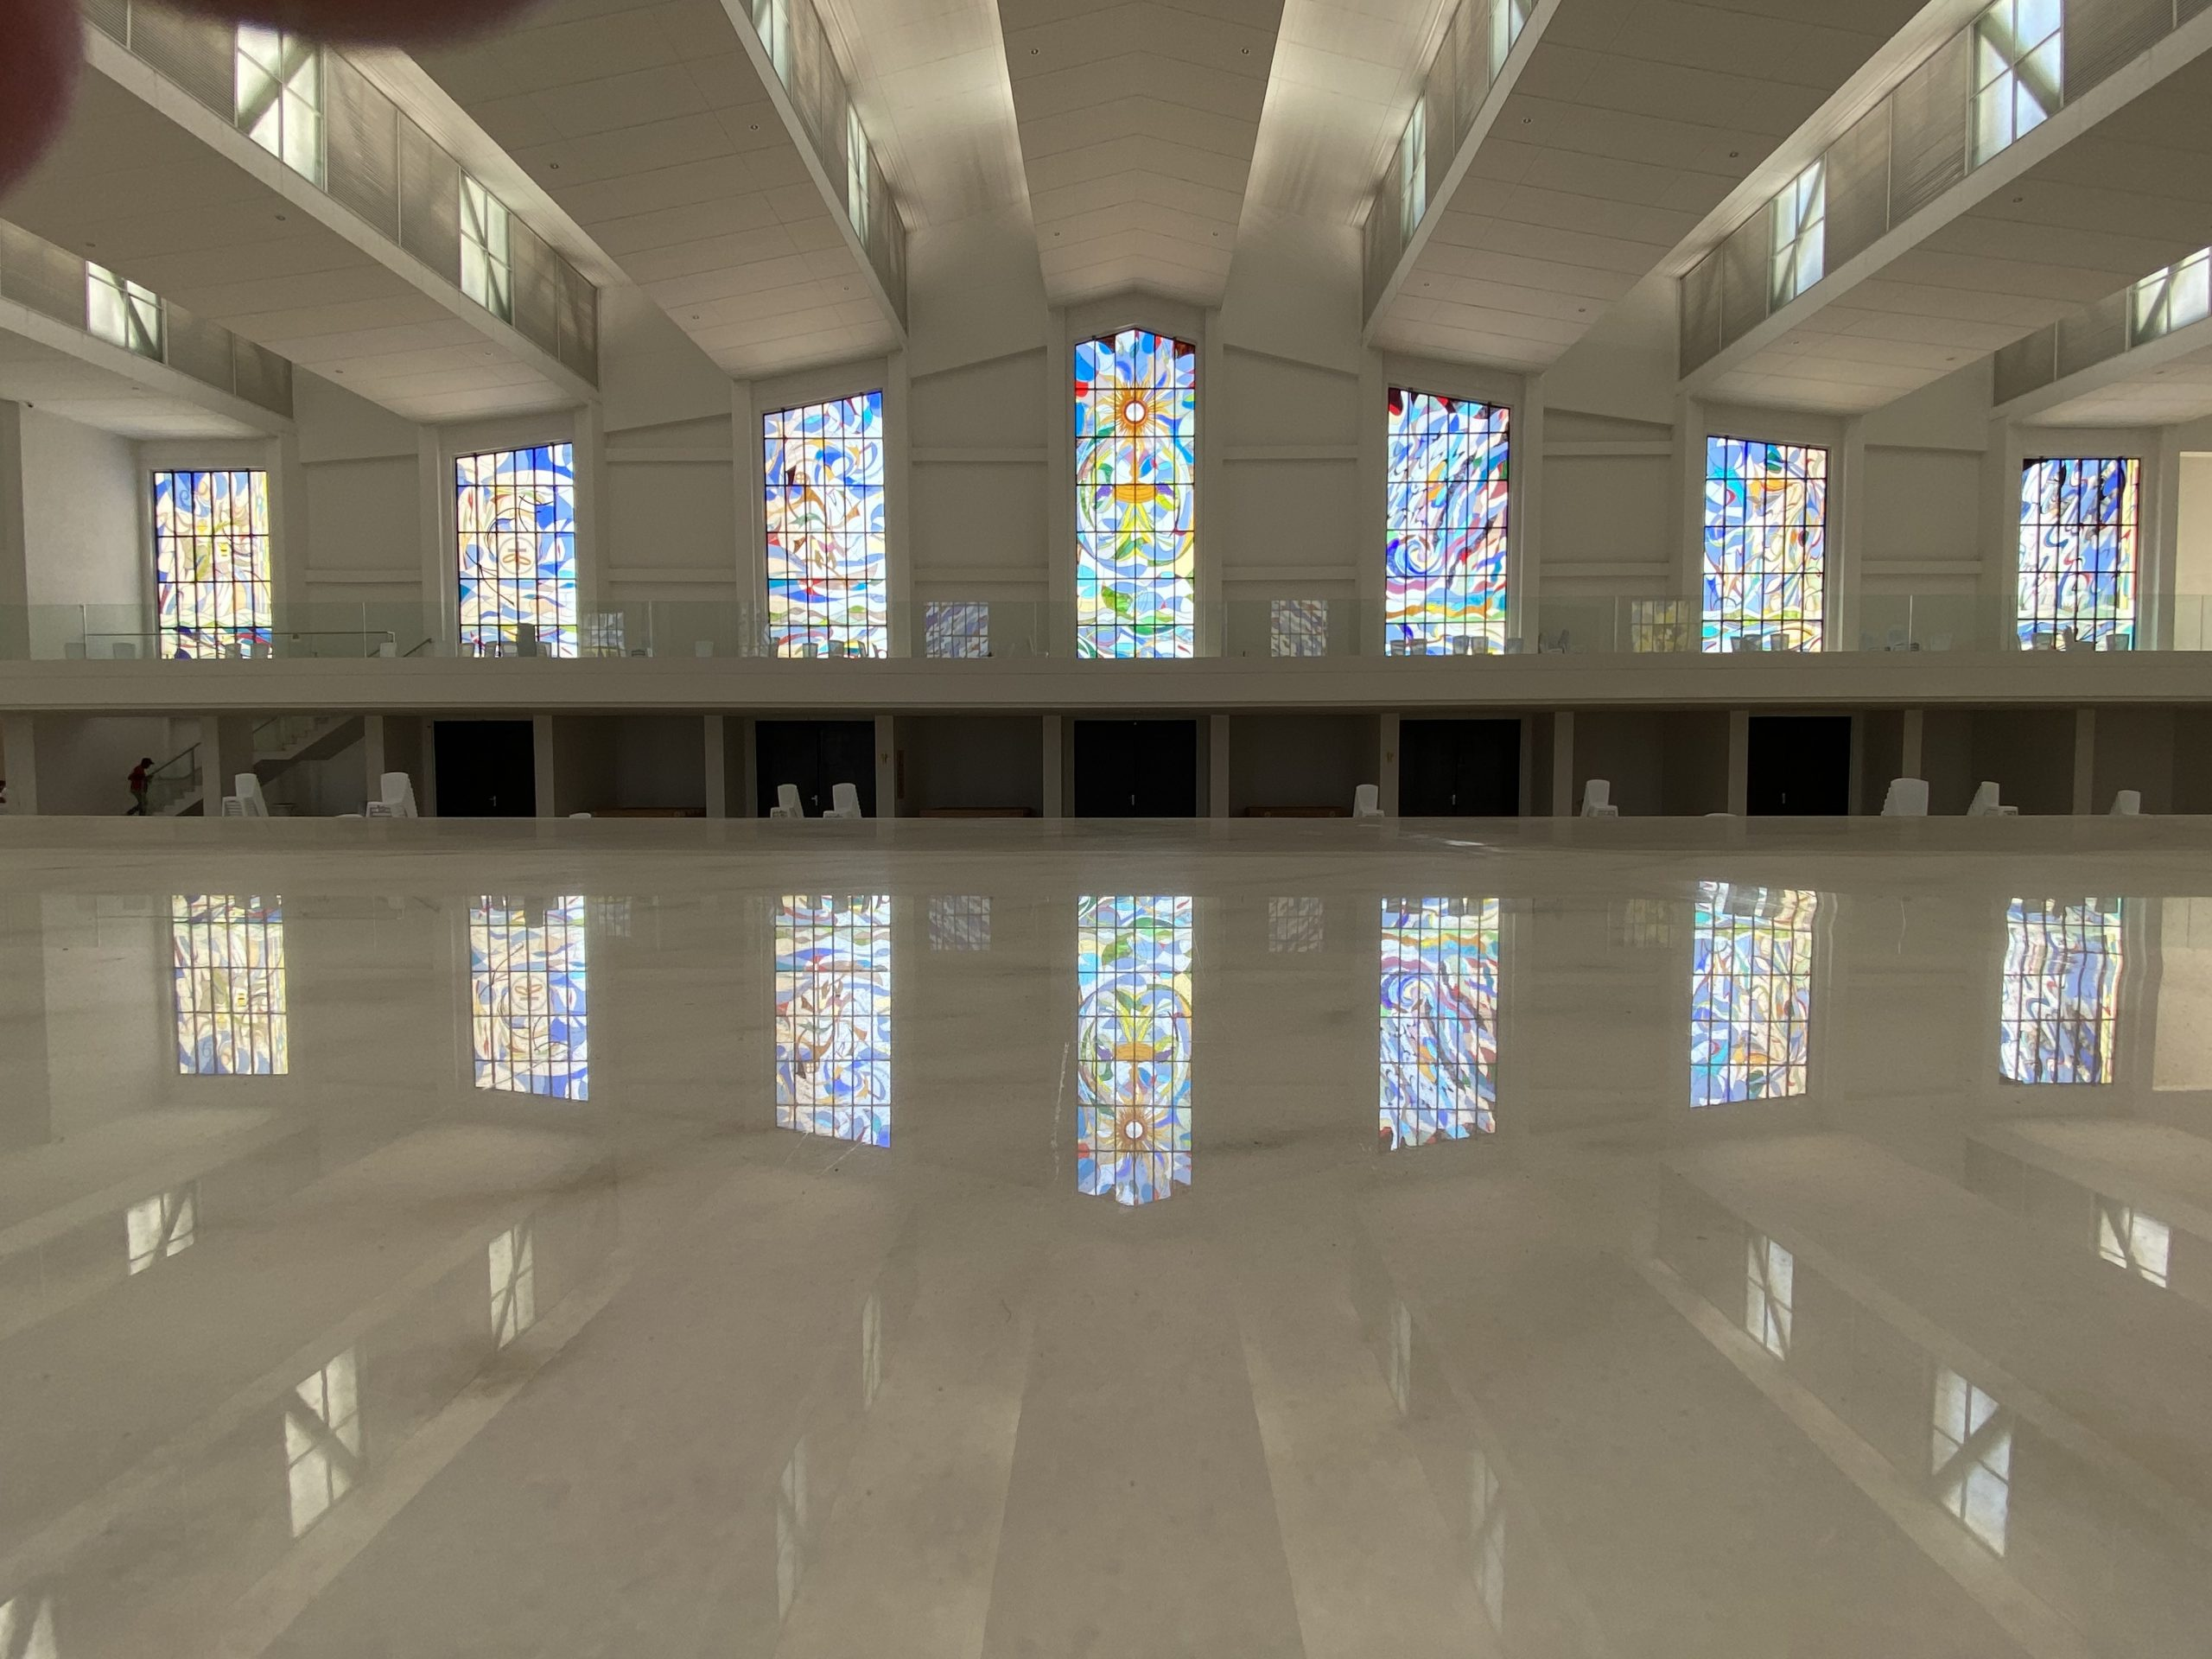 Stained glass Windows for the Cathedral SAINT ECCEHOMO of Valledupar, Cesar, Colombia, South America